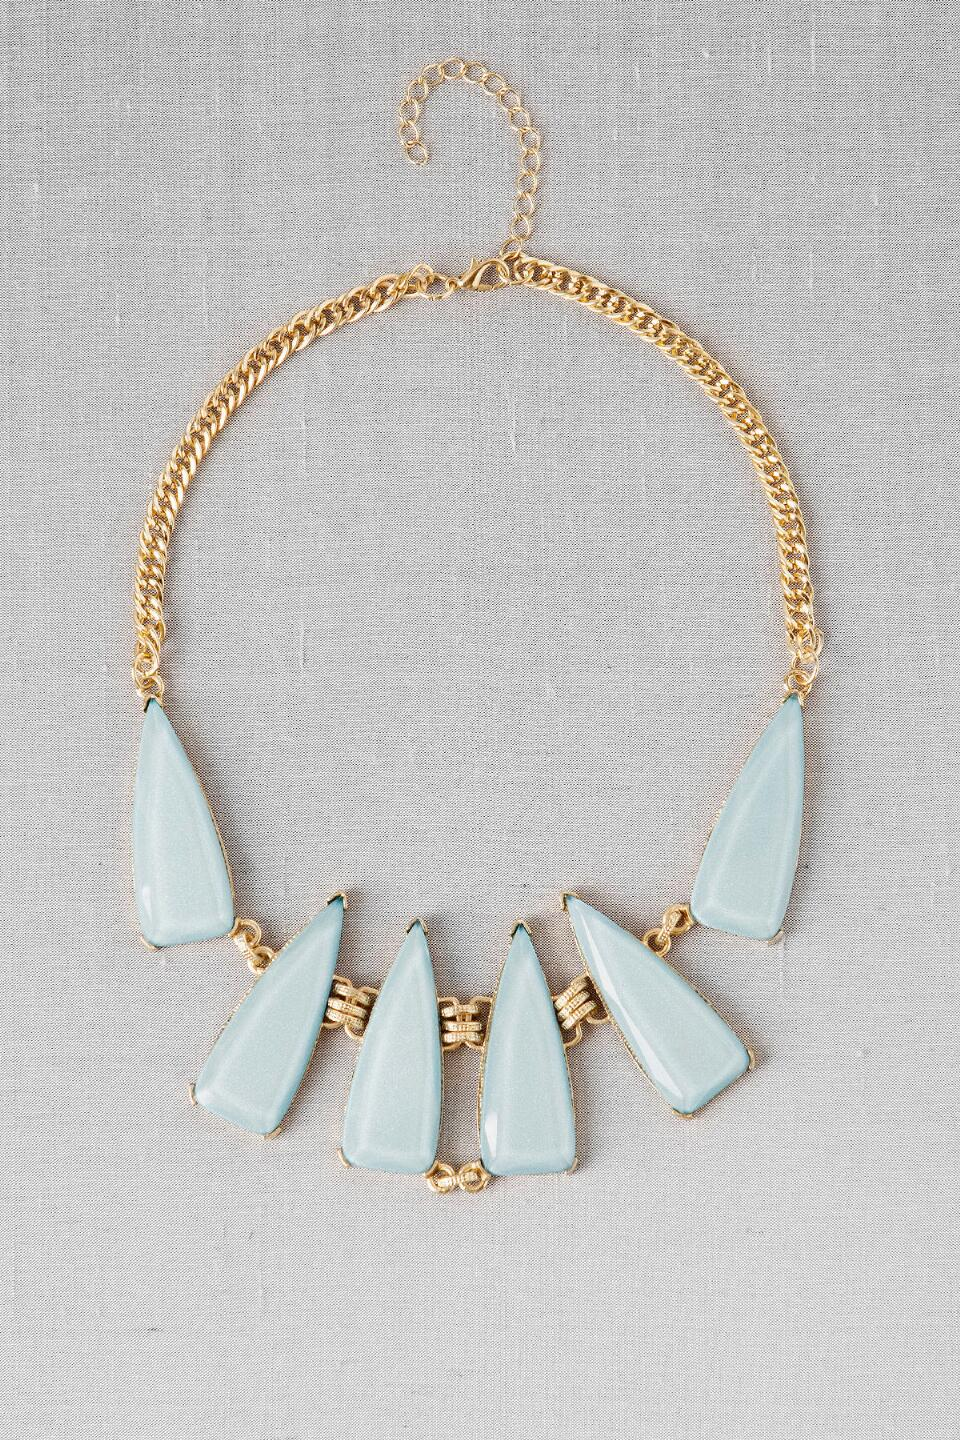 Salzburg Geometric Statement Necklace in Light Blue-  ltblu-cl